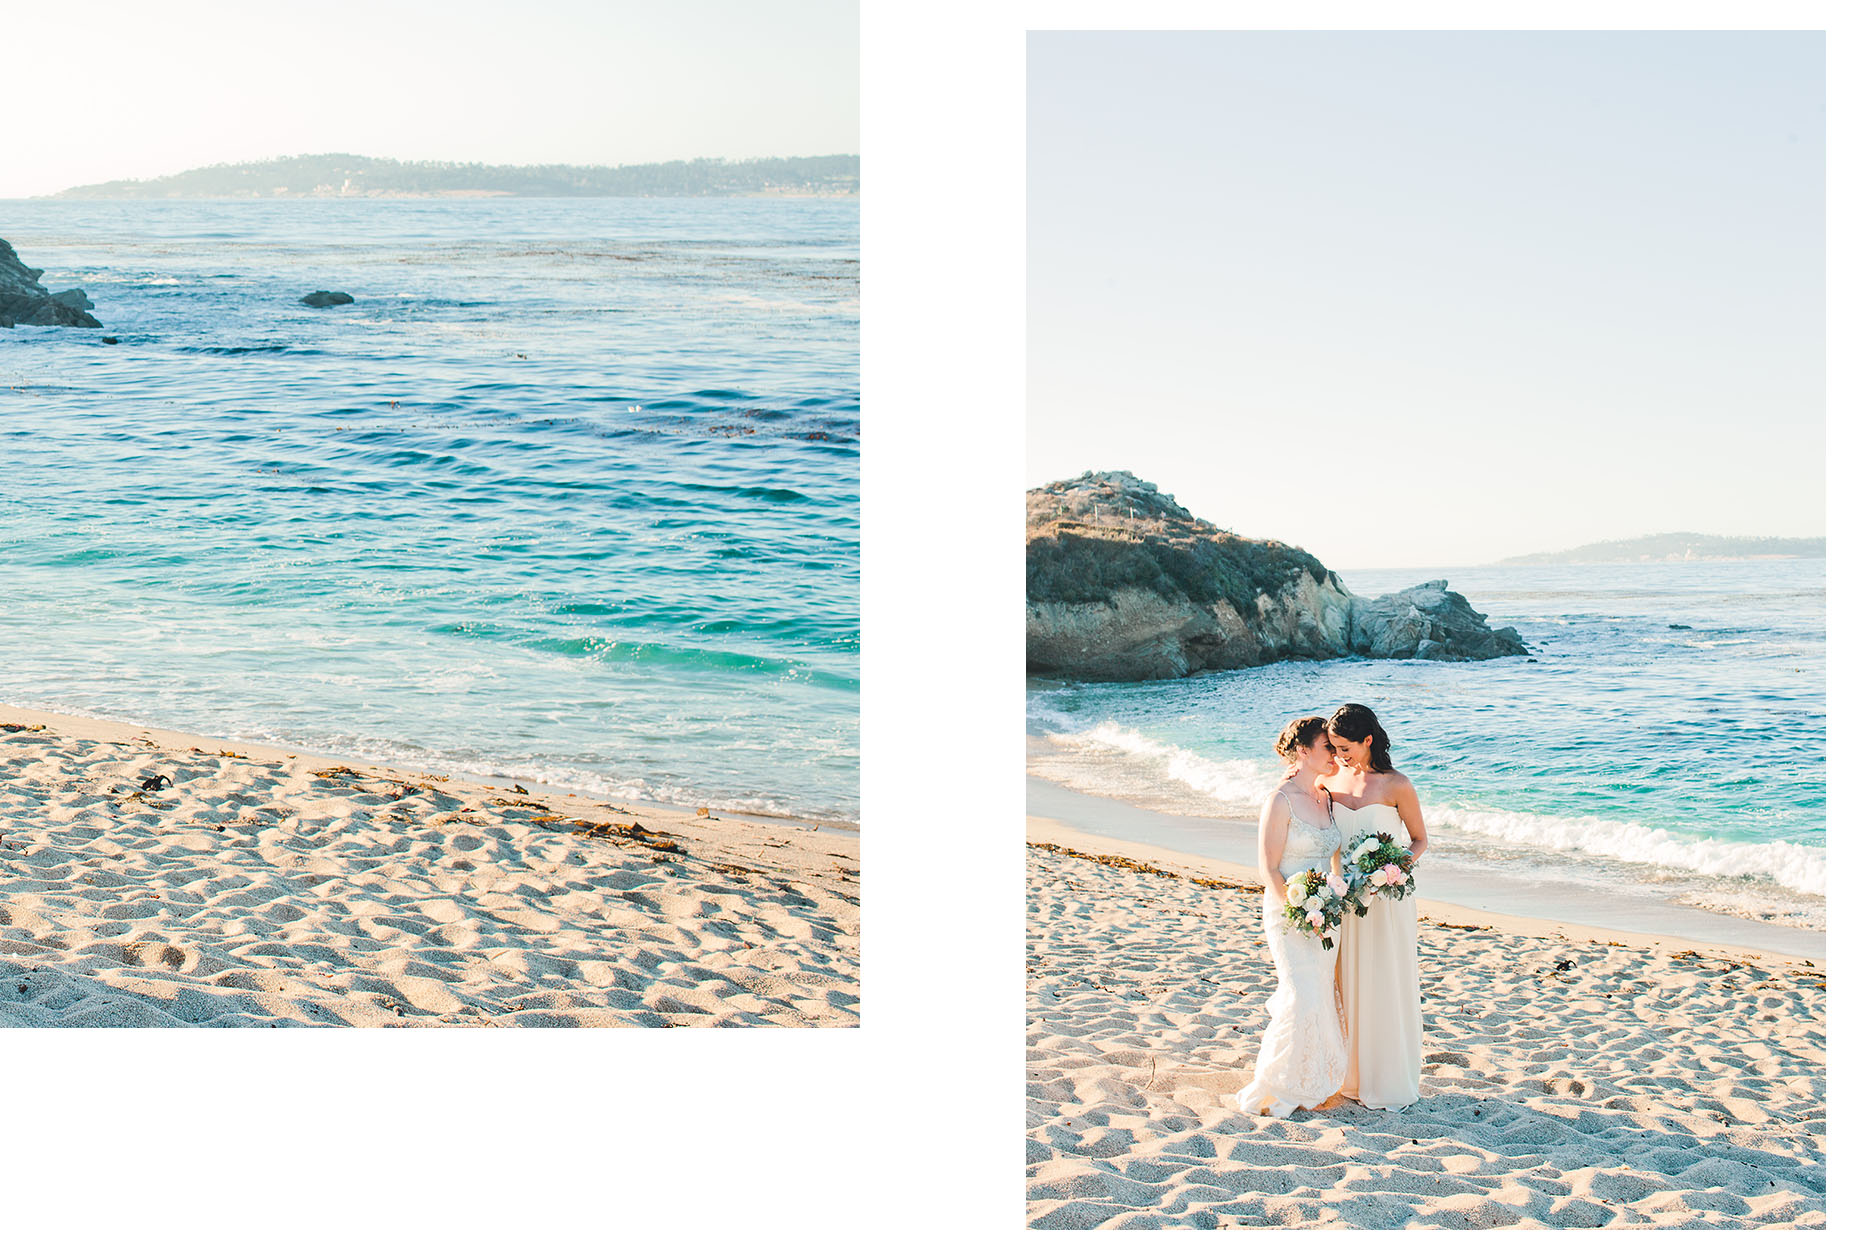 weddingphotographerinmontereyLesbianlgbtqweddingphotographersandiegolaorangecountyweddingphotog